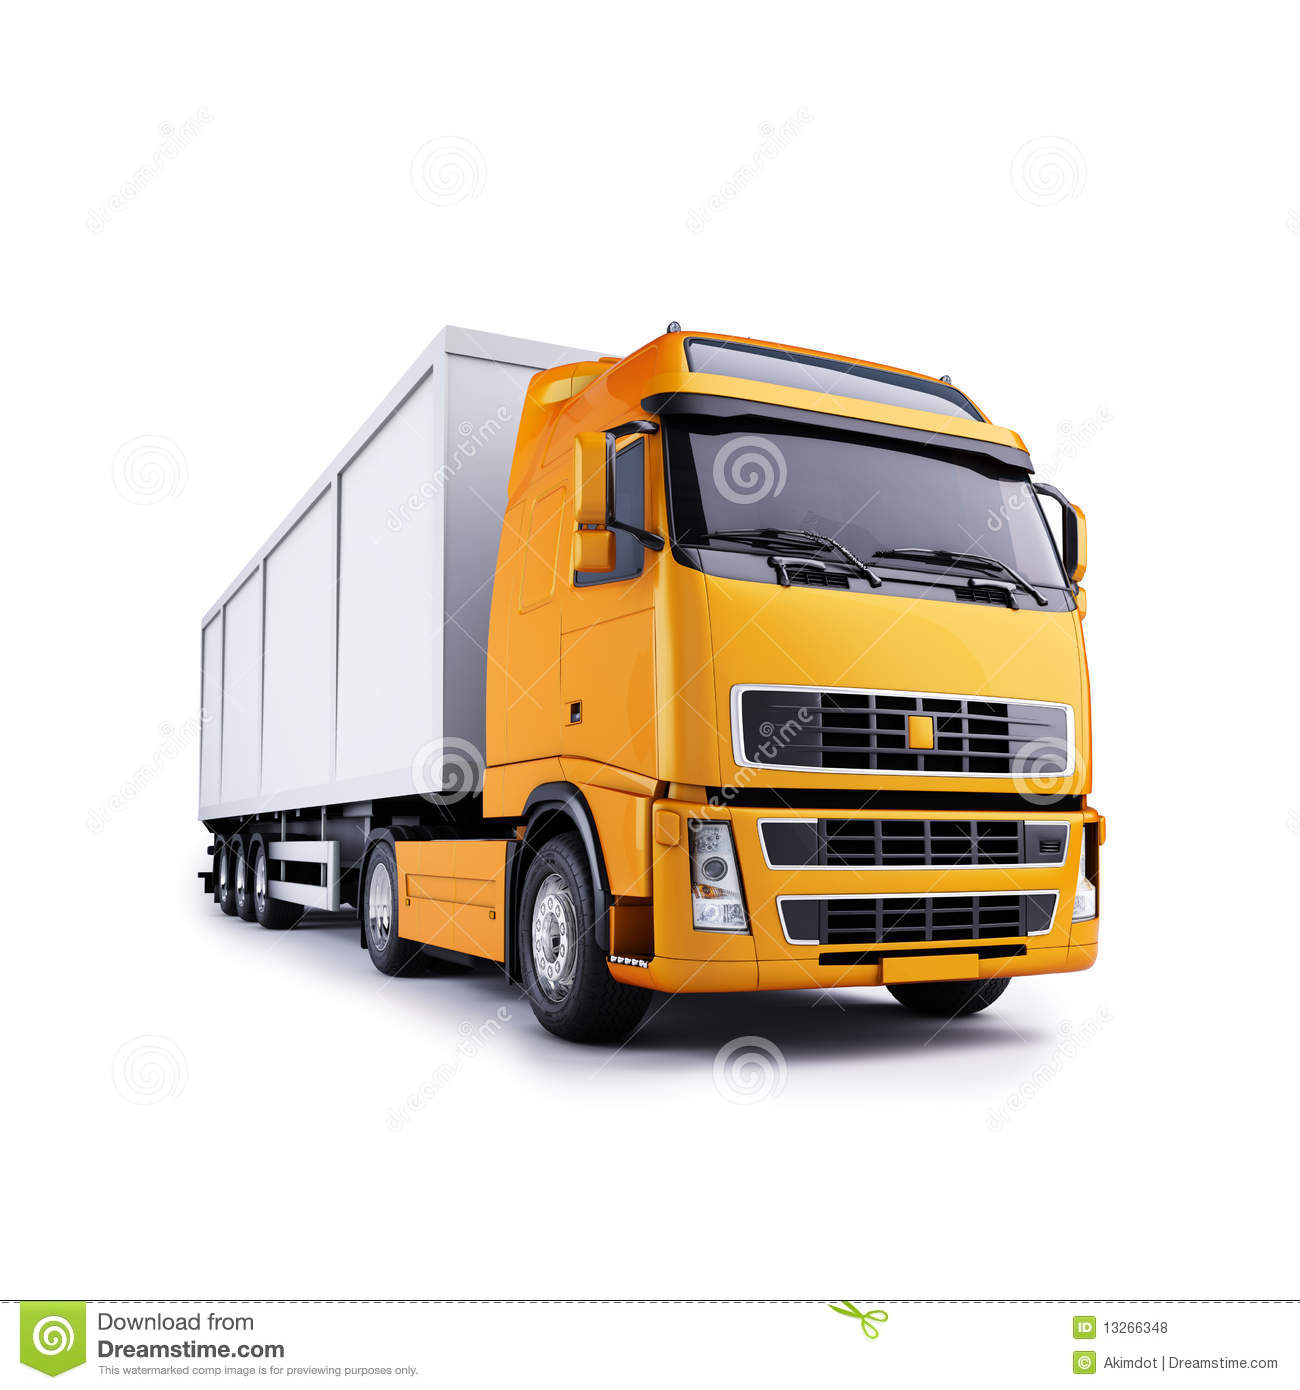 Tractor Trailer Stock : Tractor trailer truck stock illustration image of